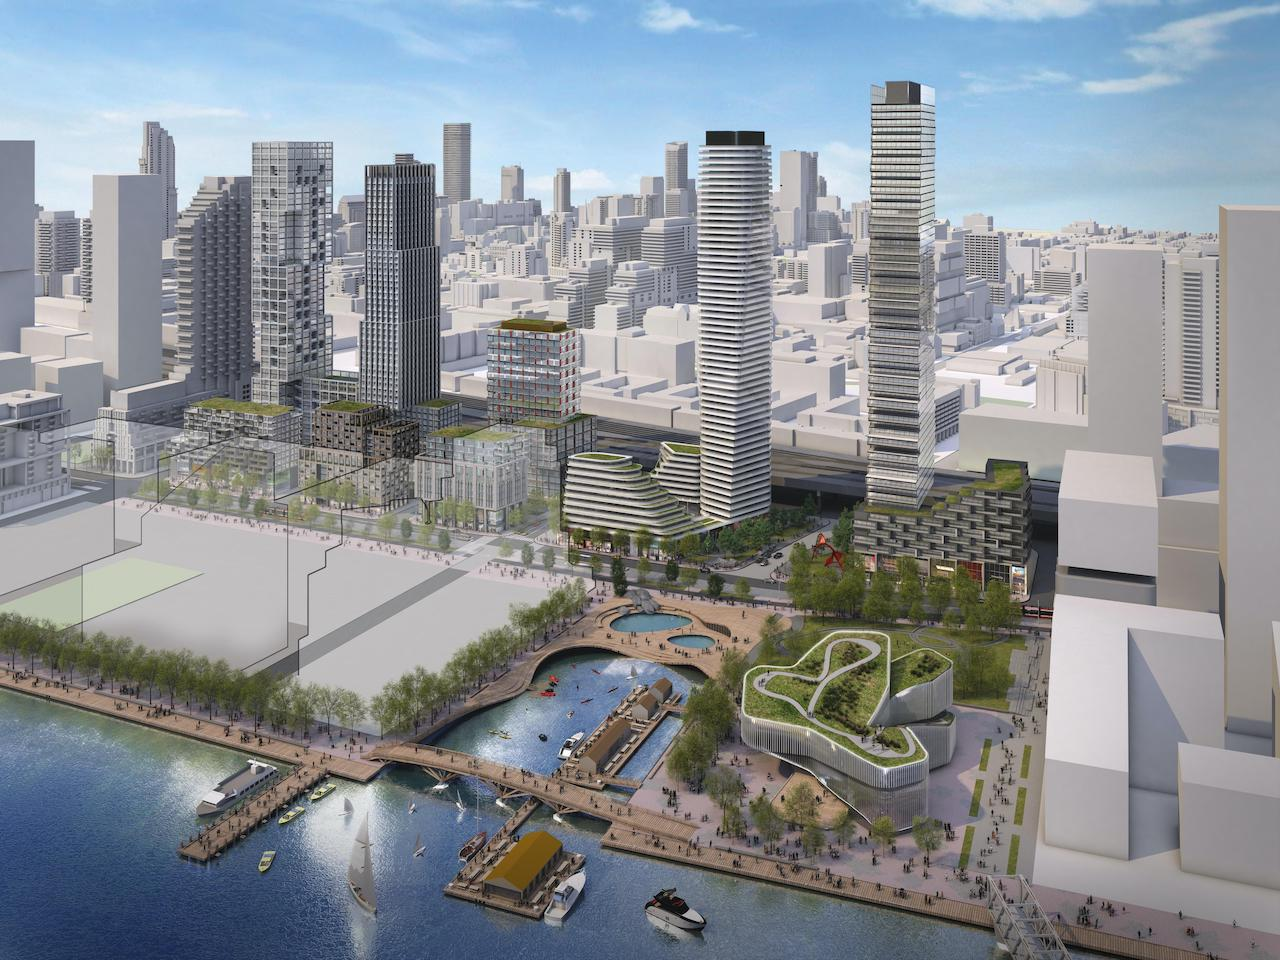 Quayside, Vision rendering by Standard Practice for Waterfront Toronto